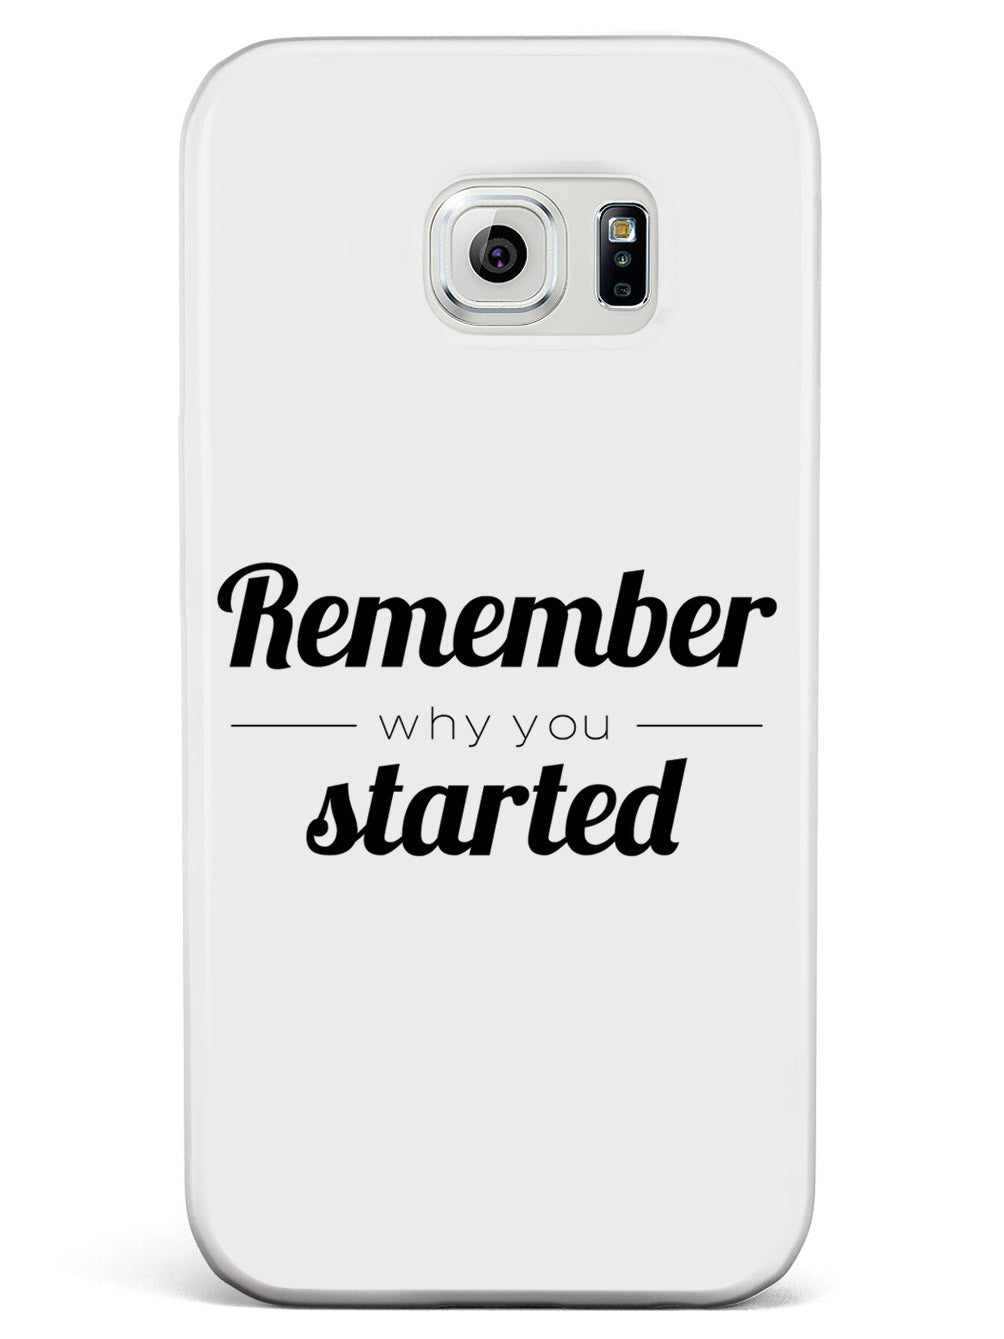 Remember Why You Started - White Case